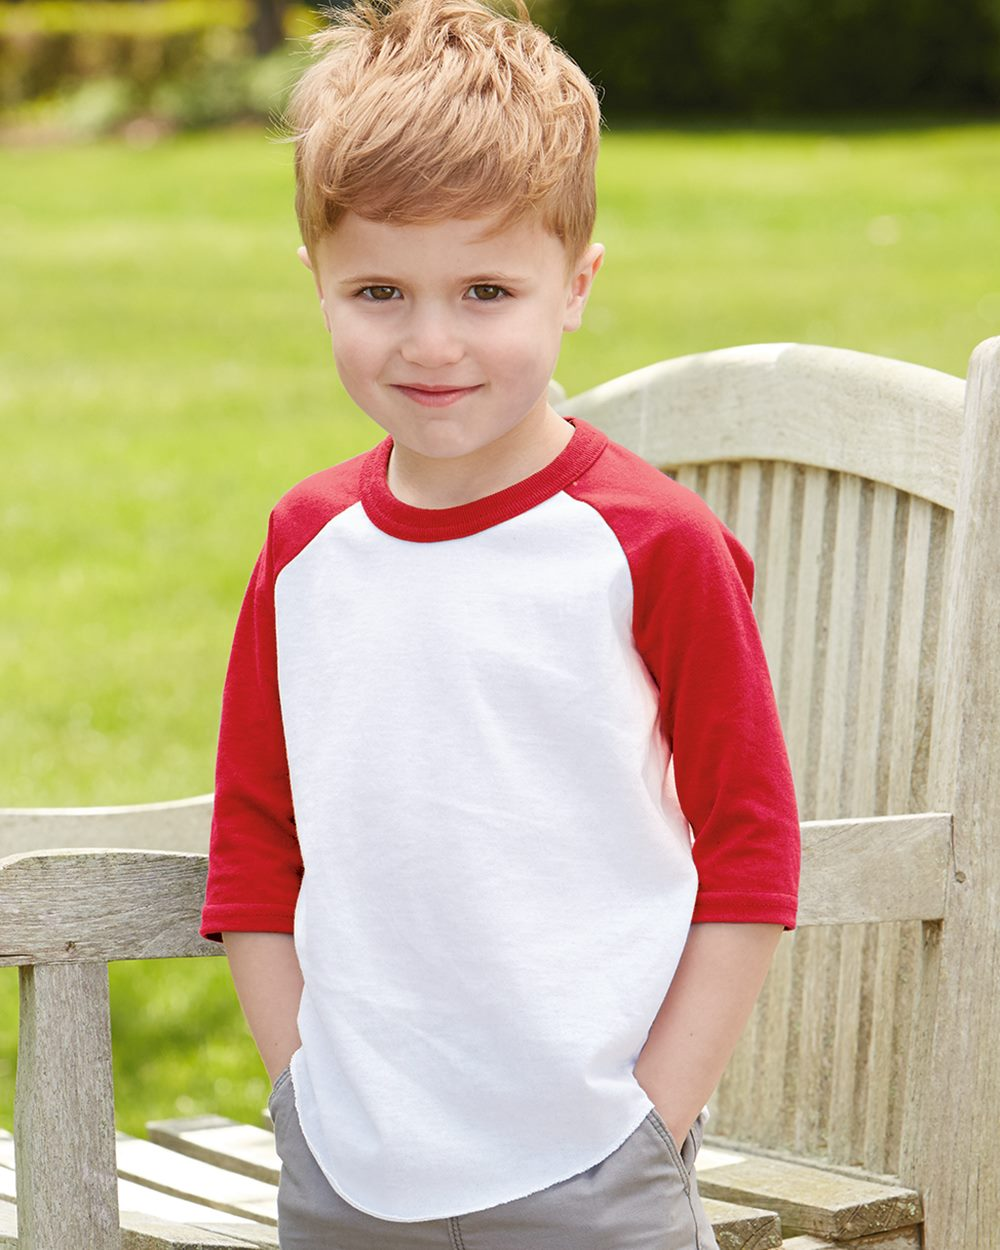 Share The Love Unisex Toddler Baseball Jersey Contrast 3//4 Sleeves Tee